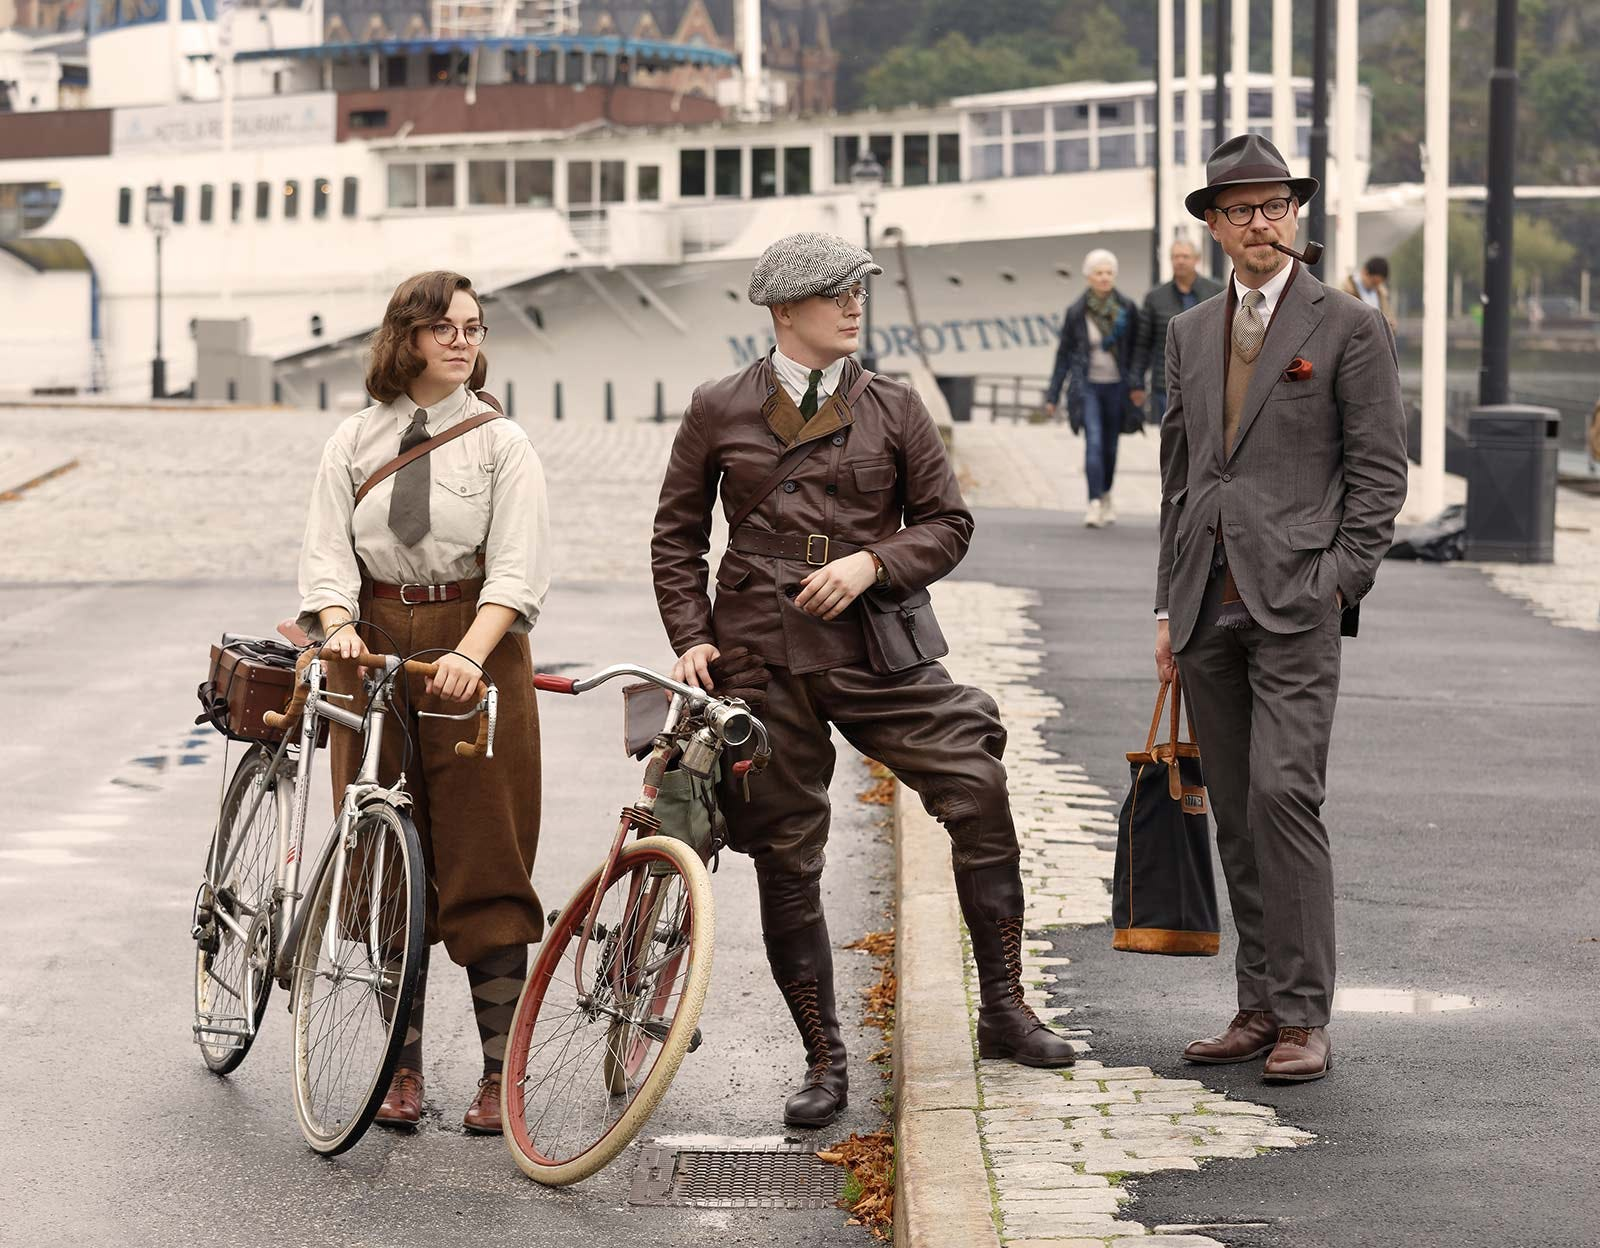 People dressed in vintage tweet outfits with bicycles, posing in front of a passenger ferry.